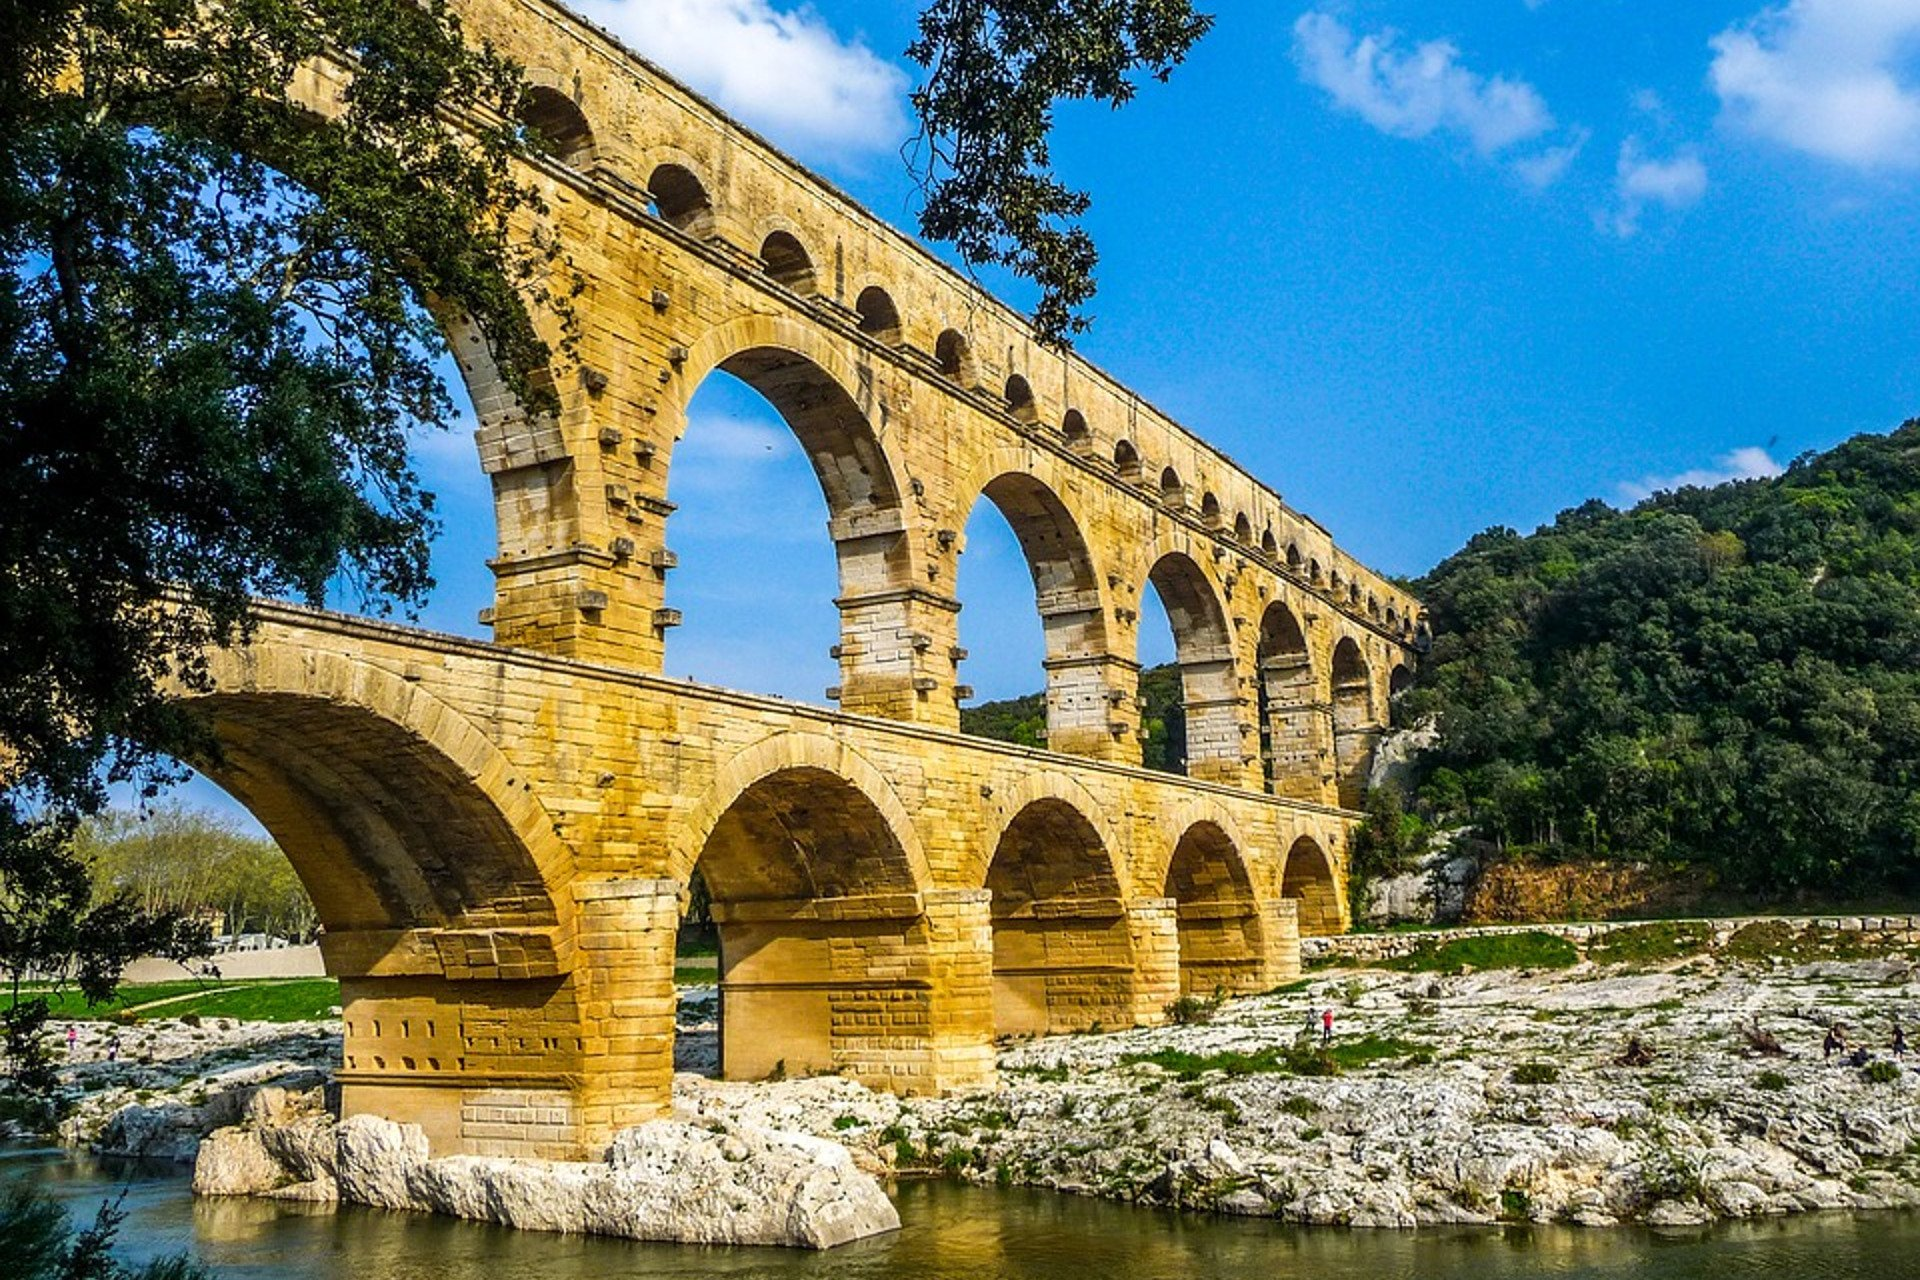 The famous Pont du Gard